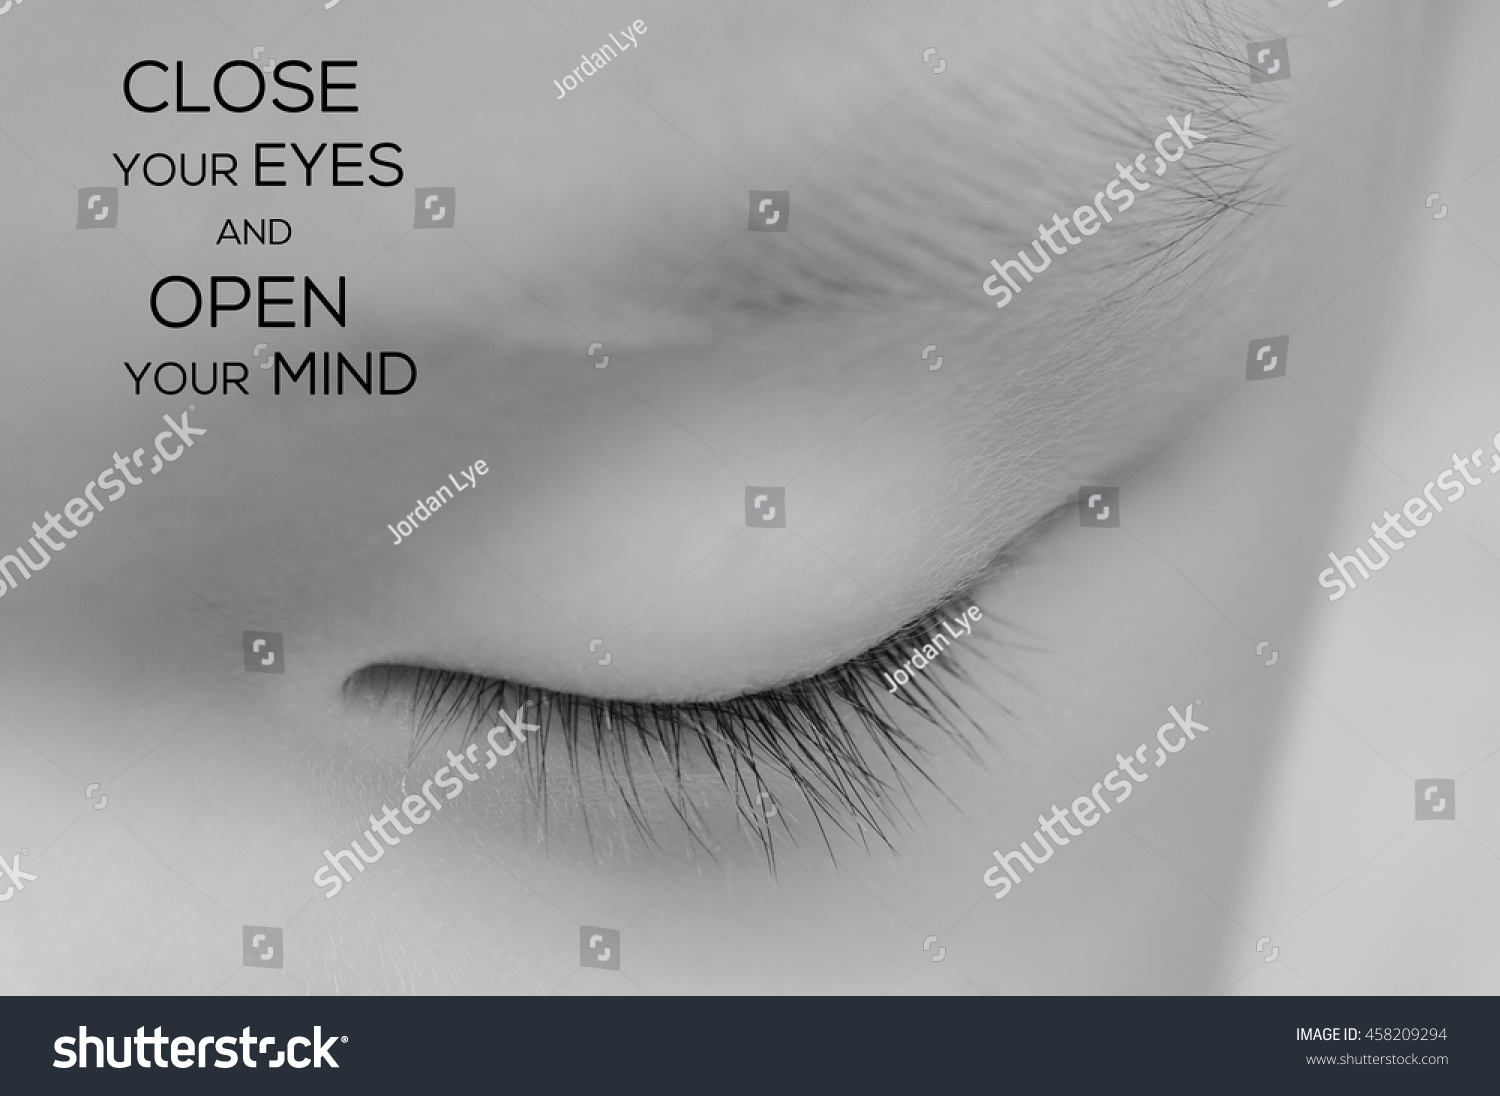 Life Inspirational Quotes Words Close Your Stock Photo Edit Now